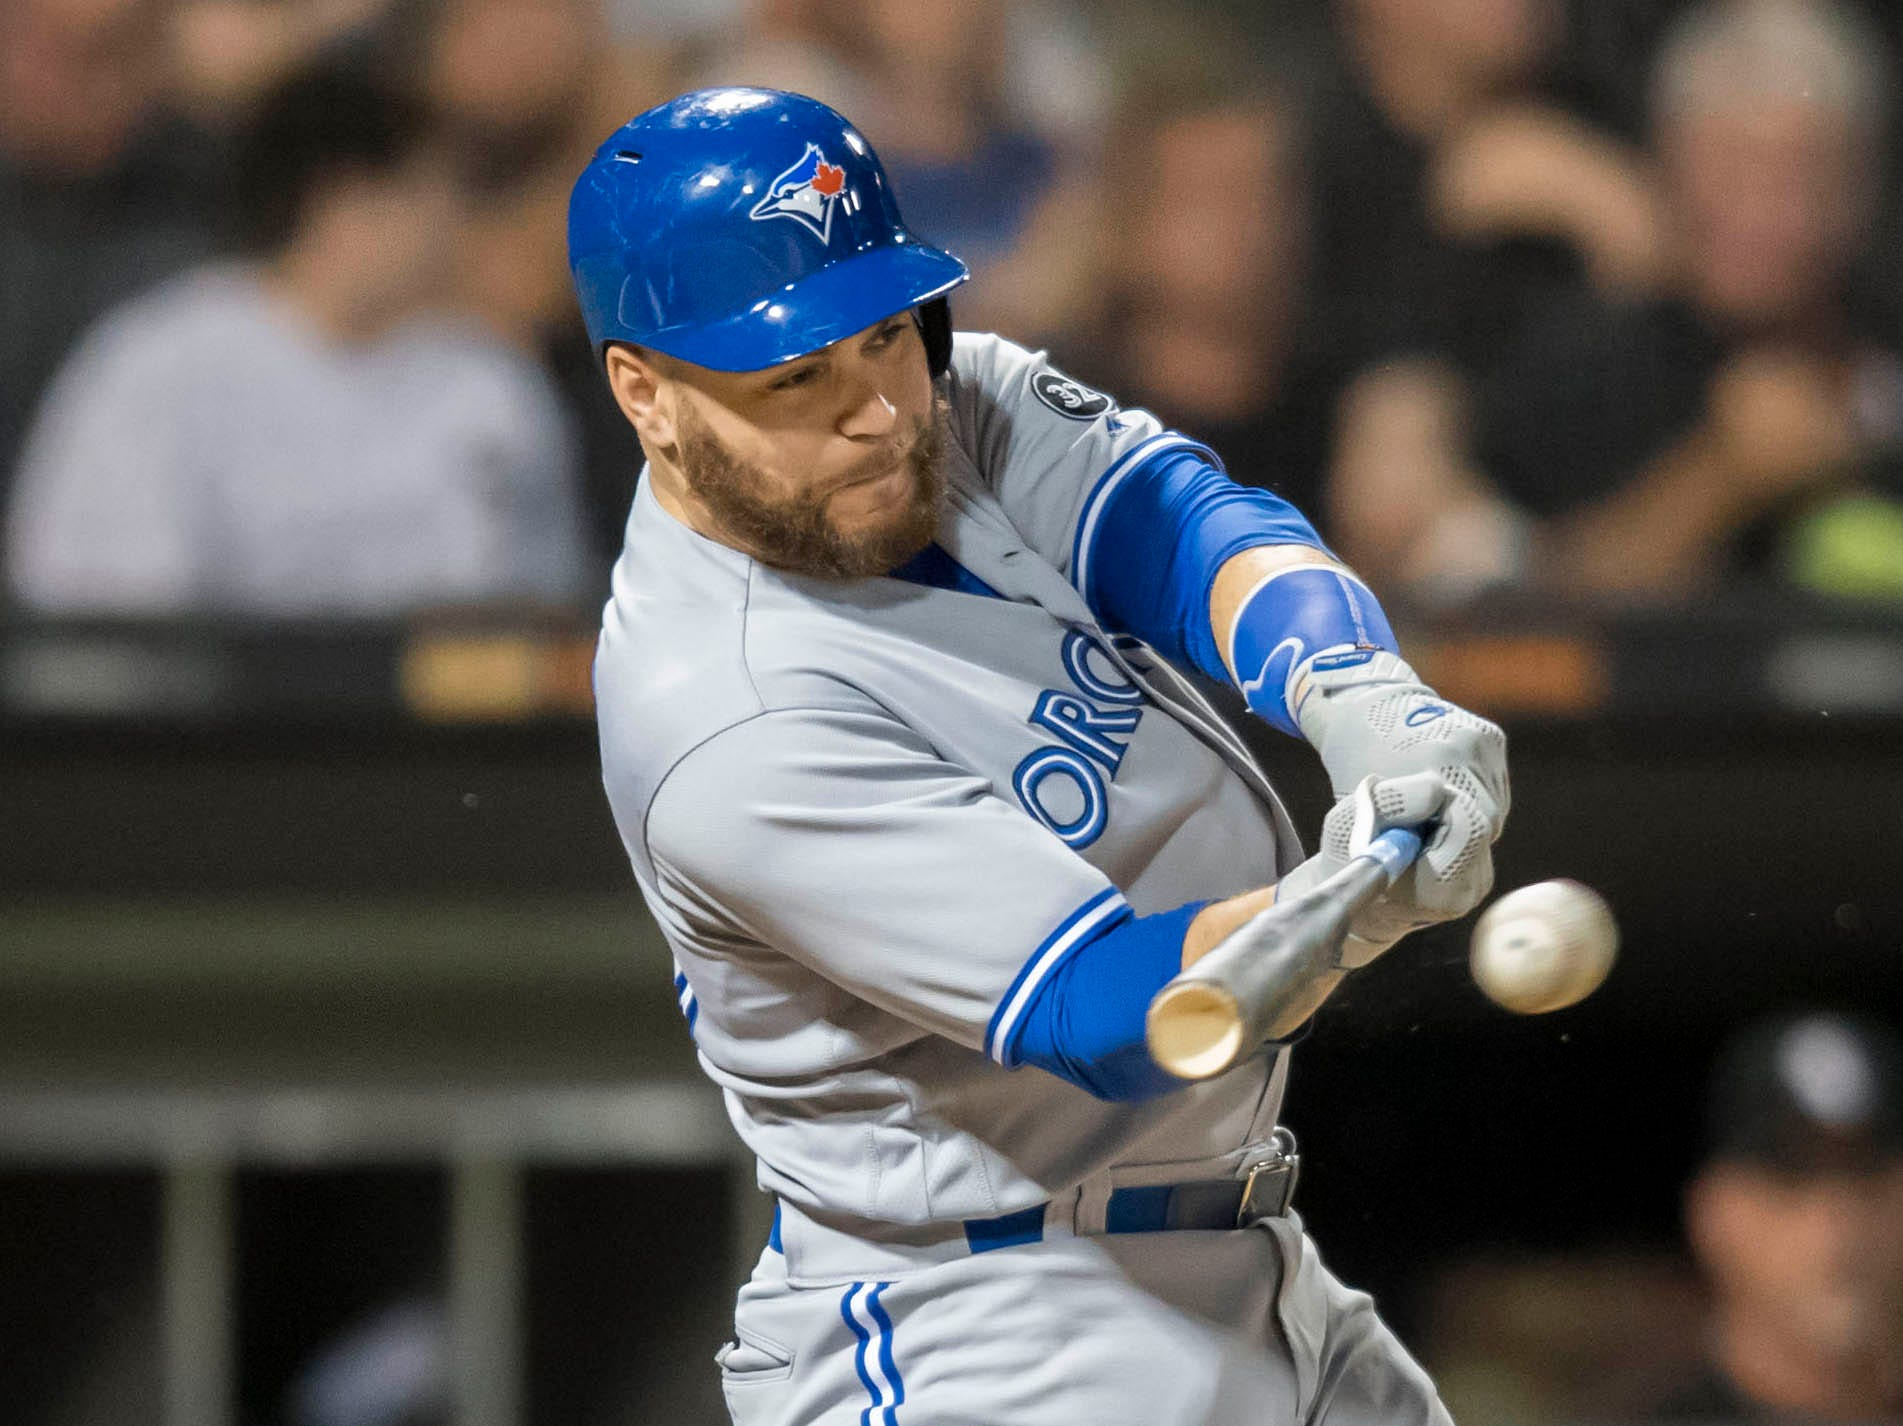 Jan. 11:  The Blue Jays traded catcher Russell Martin to the Dodgers for RHP Andrew Sopko and INF Ronny Brito.